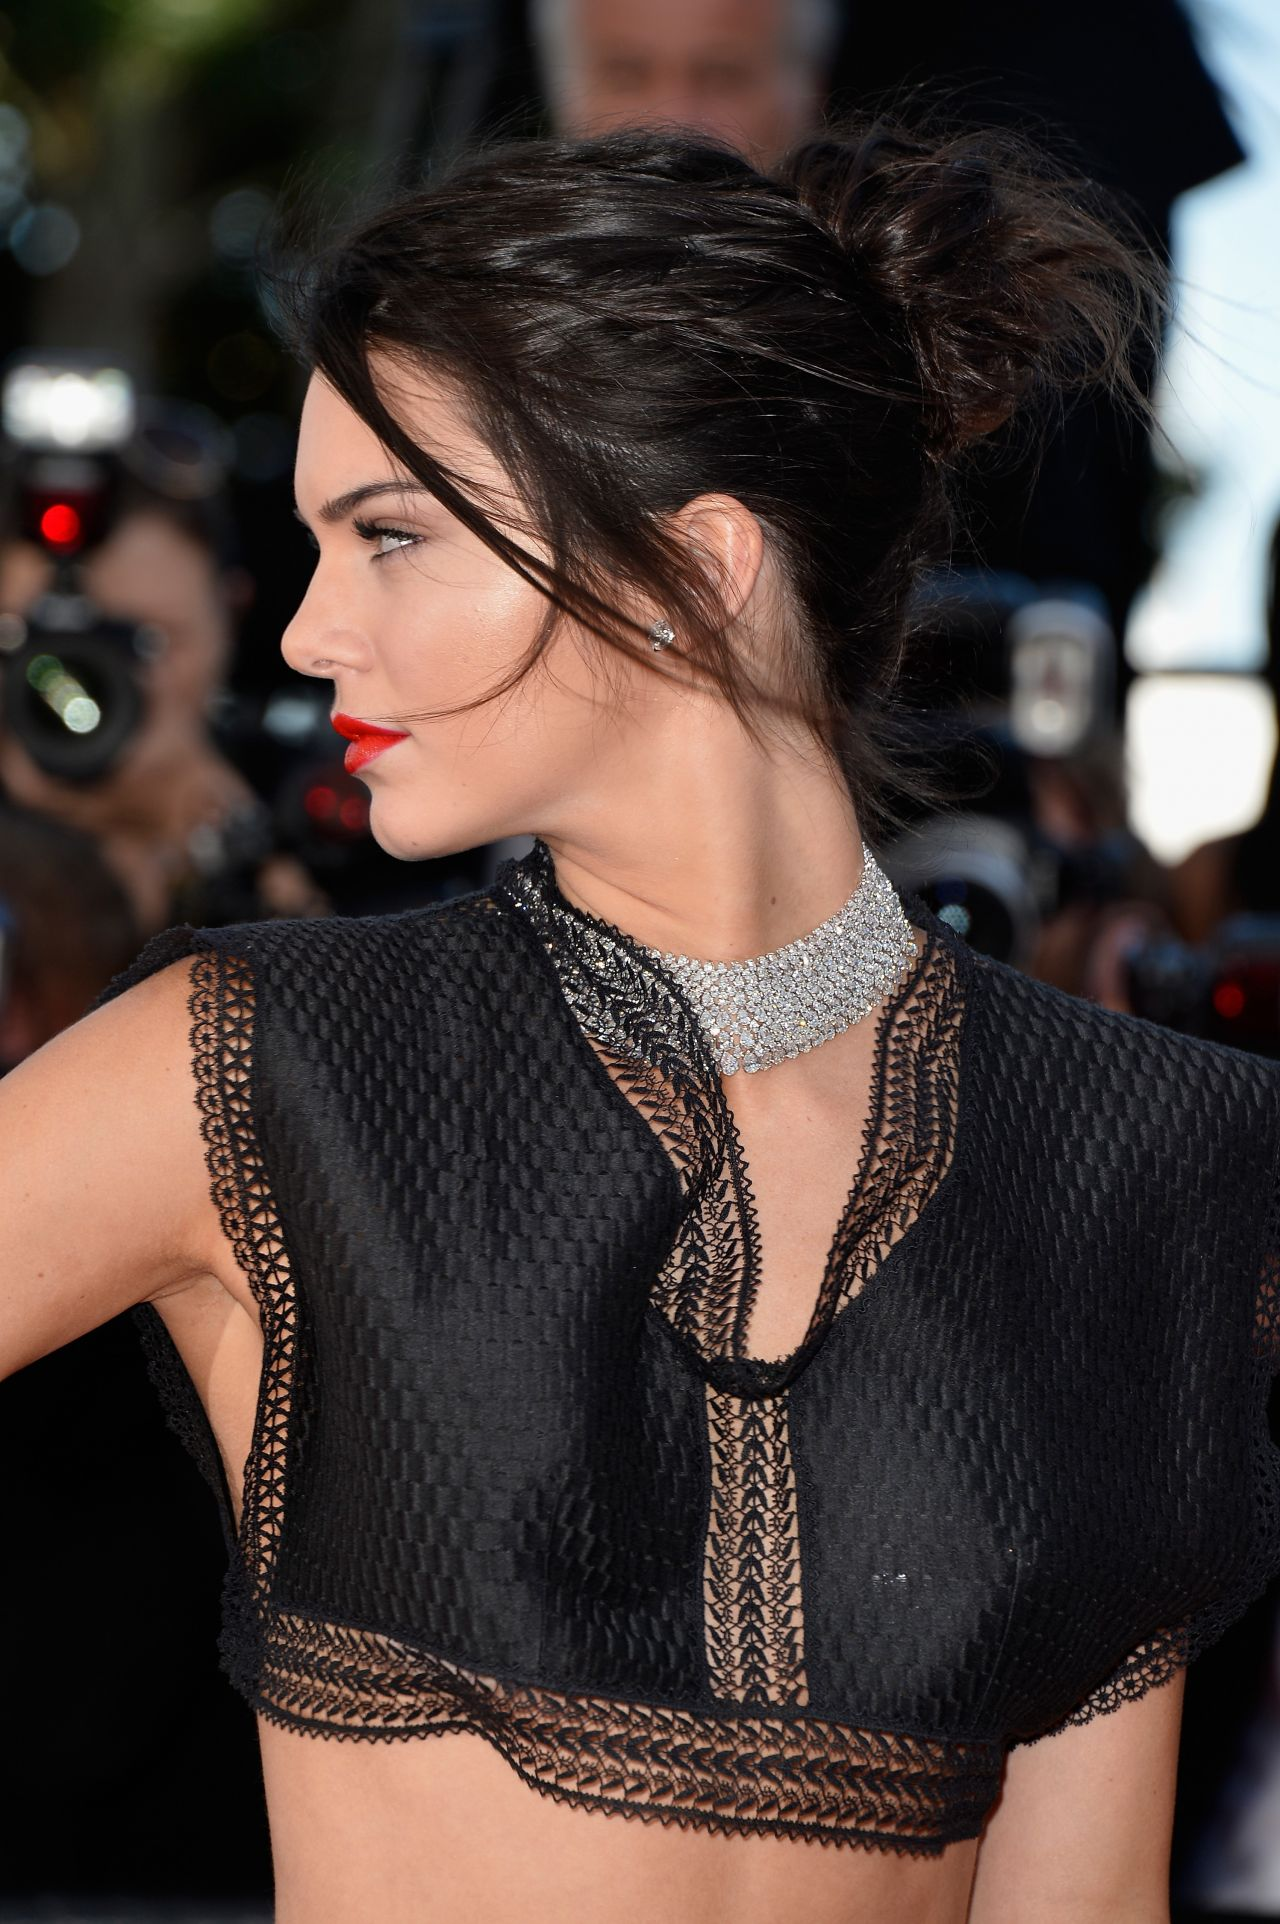 Kendall Jenner Youth Premiere At 2015 Cannes Film Festival